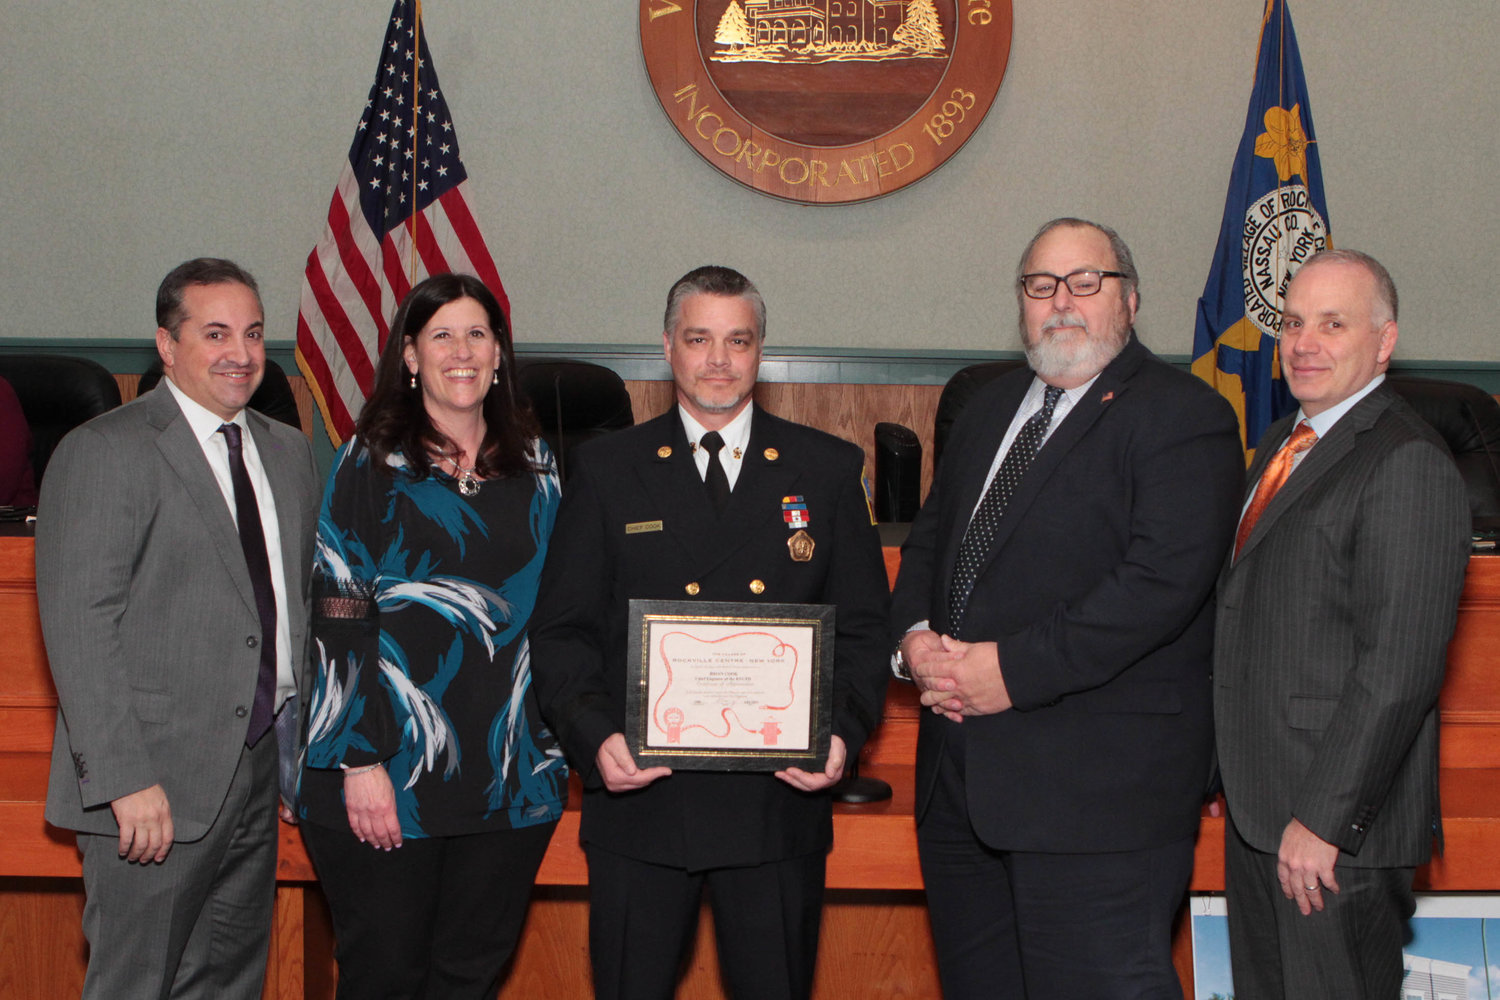 The village board honored Fire Chief Brian Cook, center, on April 1.